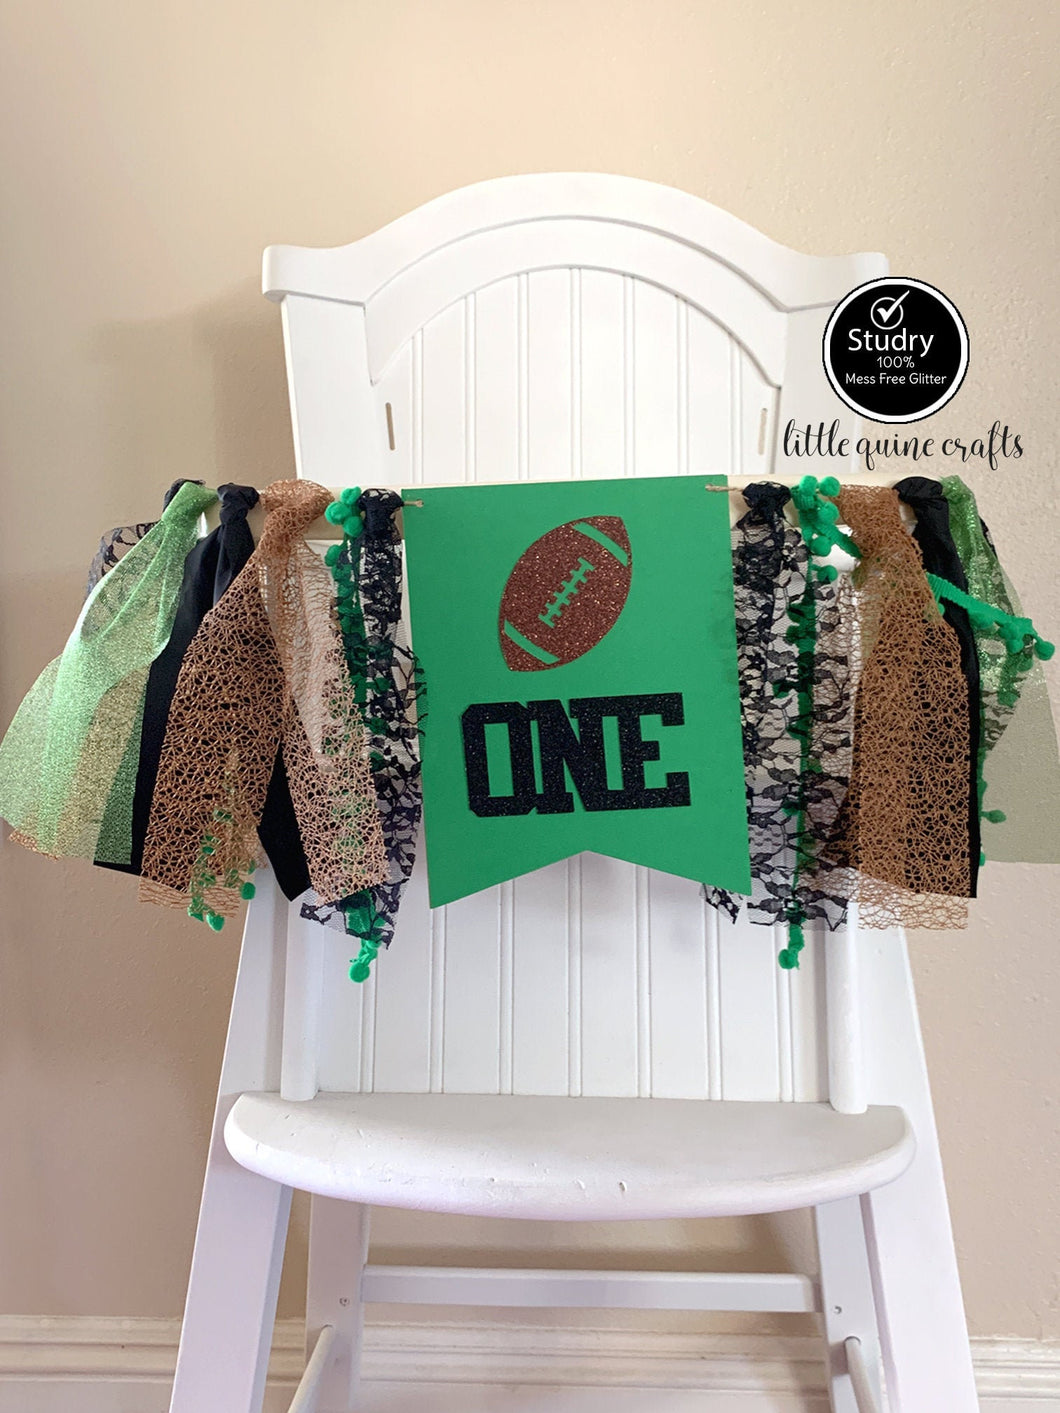 One Football Rag Tie pennant Banner Green Brown Black Glitter High Chair Banner cake smash Photo prop Decor sports touch down 1st Birthday